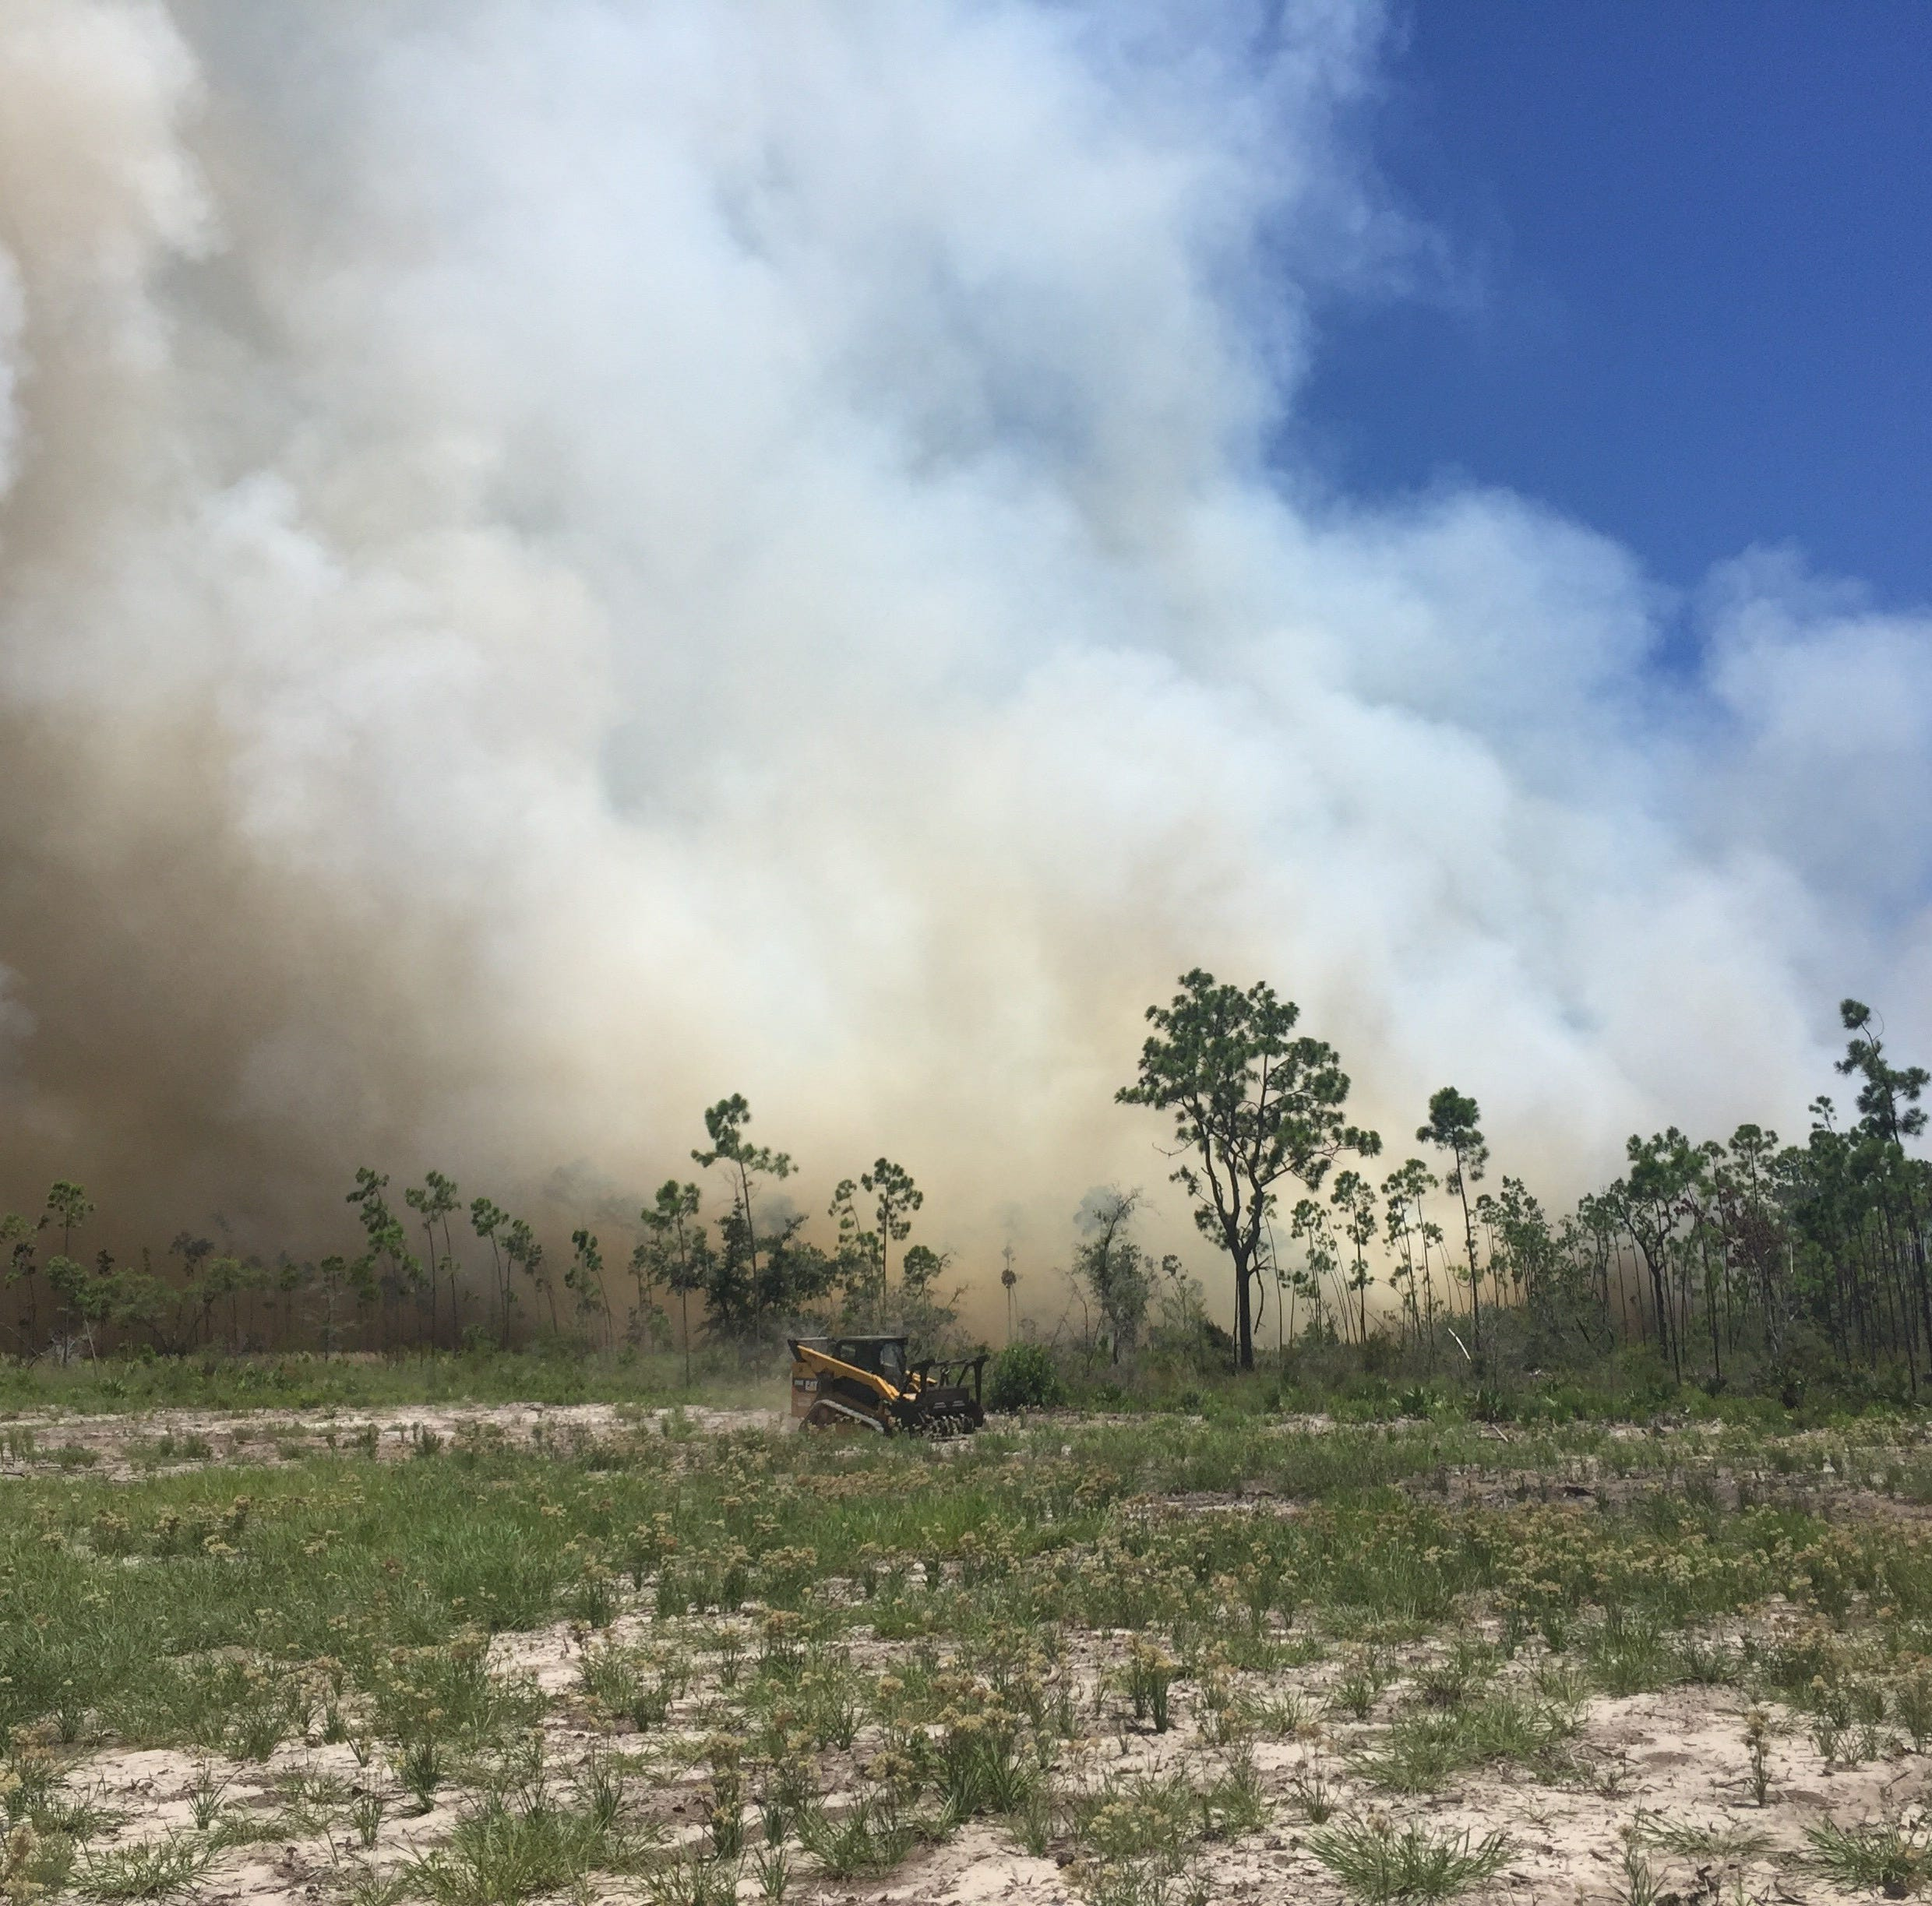 Bergren Road fire 95 percent contained, estimated at 44 acres